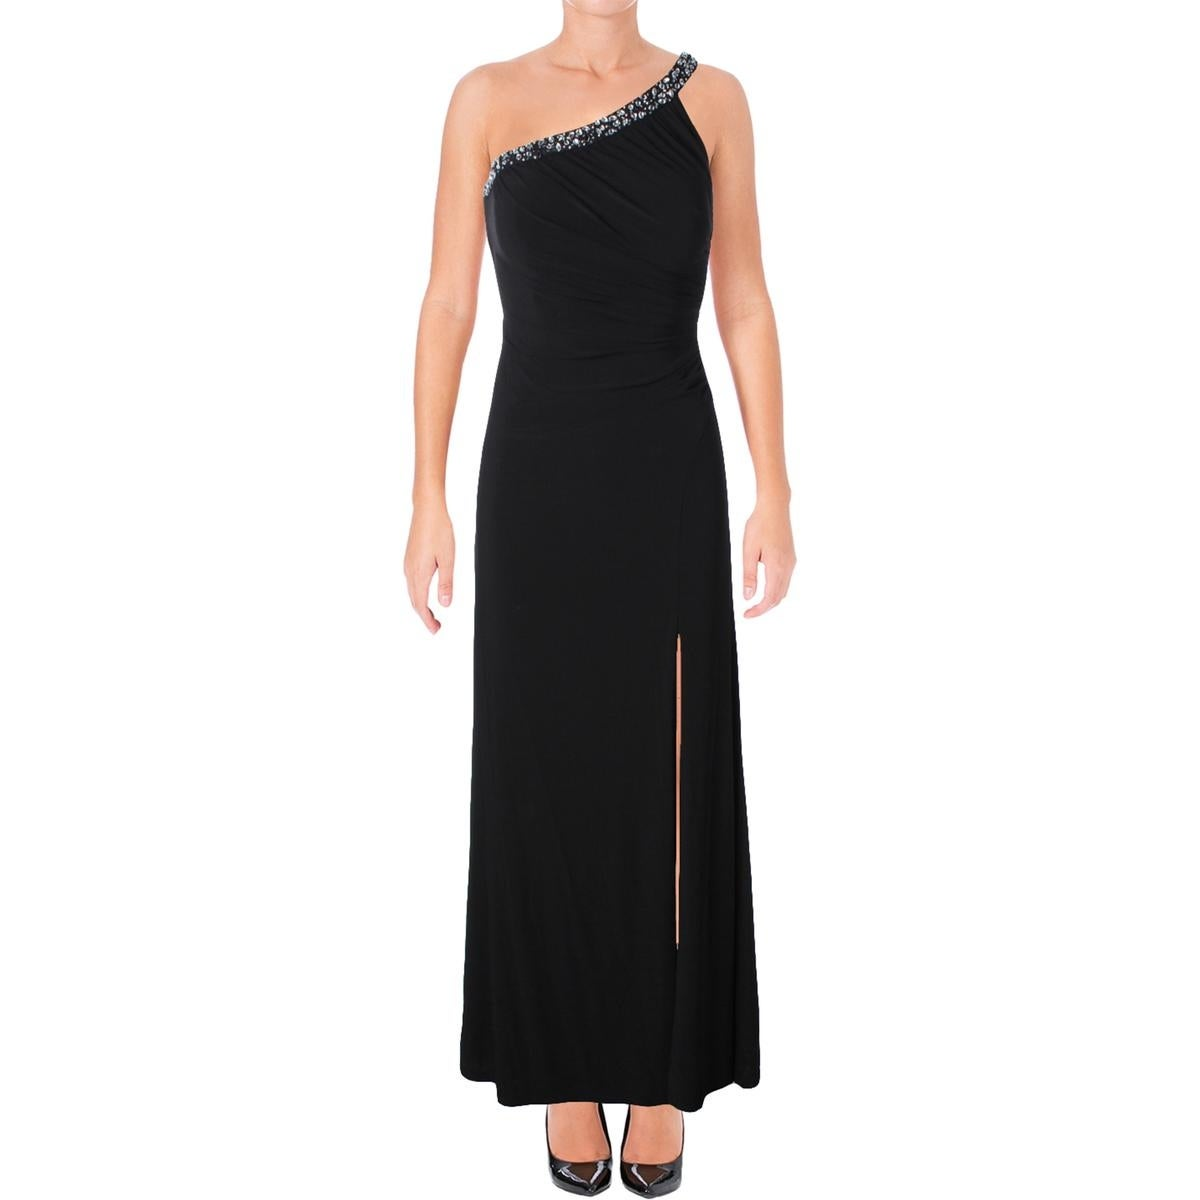 b71fb2707be Shop Hailey Logan by Adrianna Papell Womens Juniors Semi-Formal Dress  Cut-Out - 3 4 - Free Shipping On Orders Over  45 - Overstock - 19424084